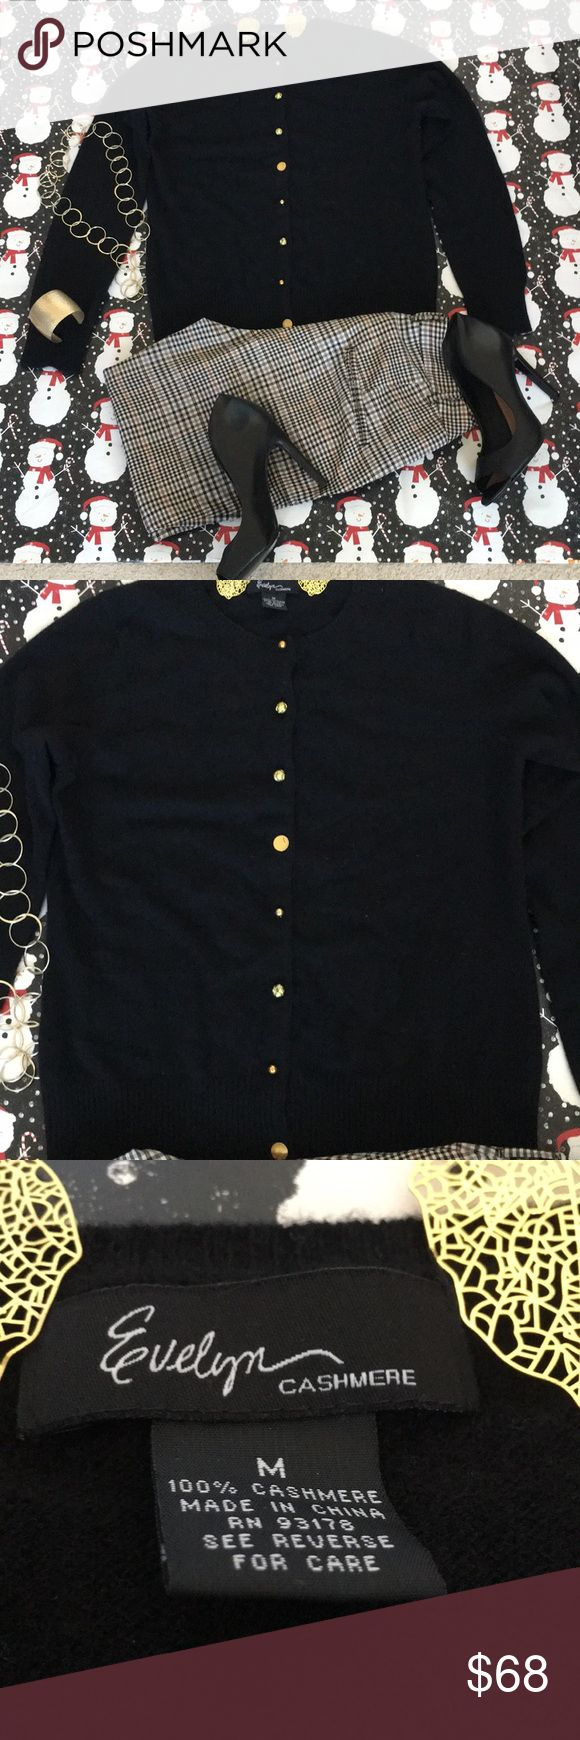 Women's Cashmere Sweater Very nice NWOT black cashmere sweater. The buttons are gold and different in sync all the way down (see pic for ex.). Adorable holiday gift 🎁. Accepting reasonable offers. Sweaters Cardigans